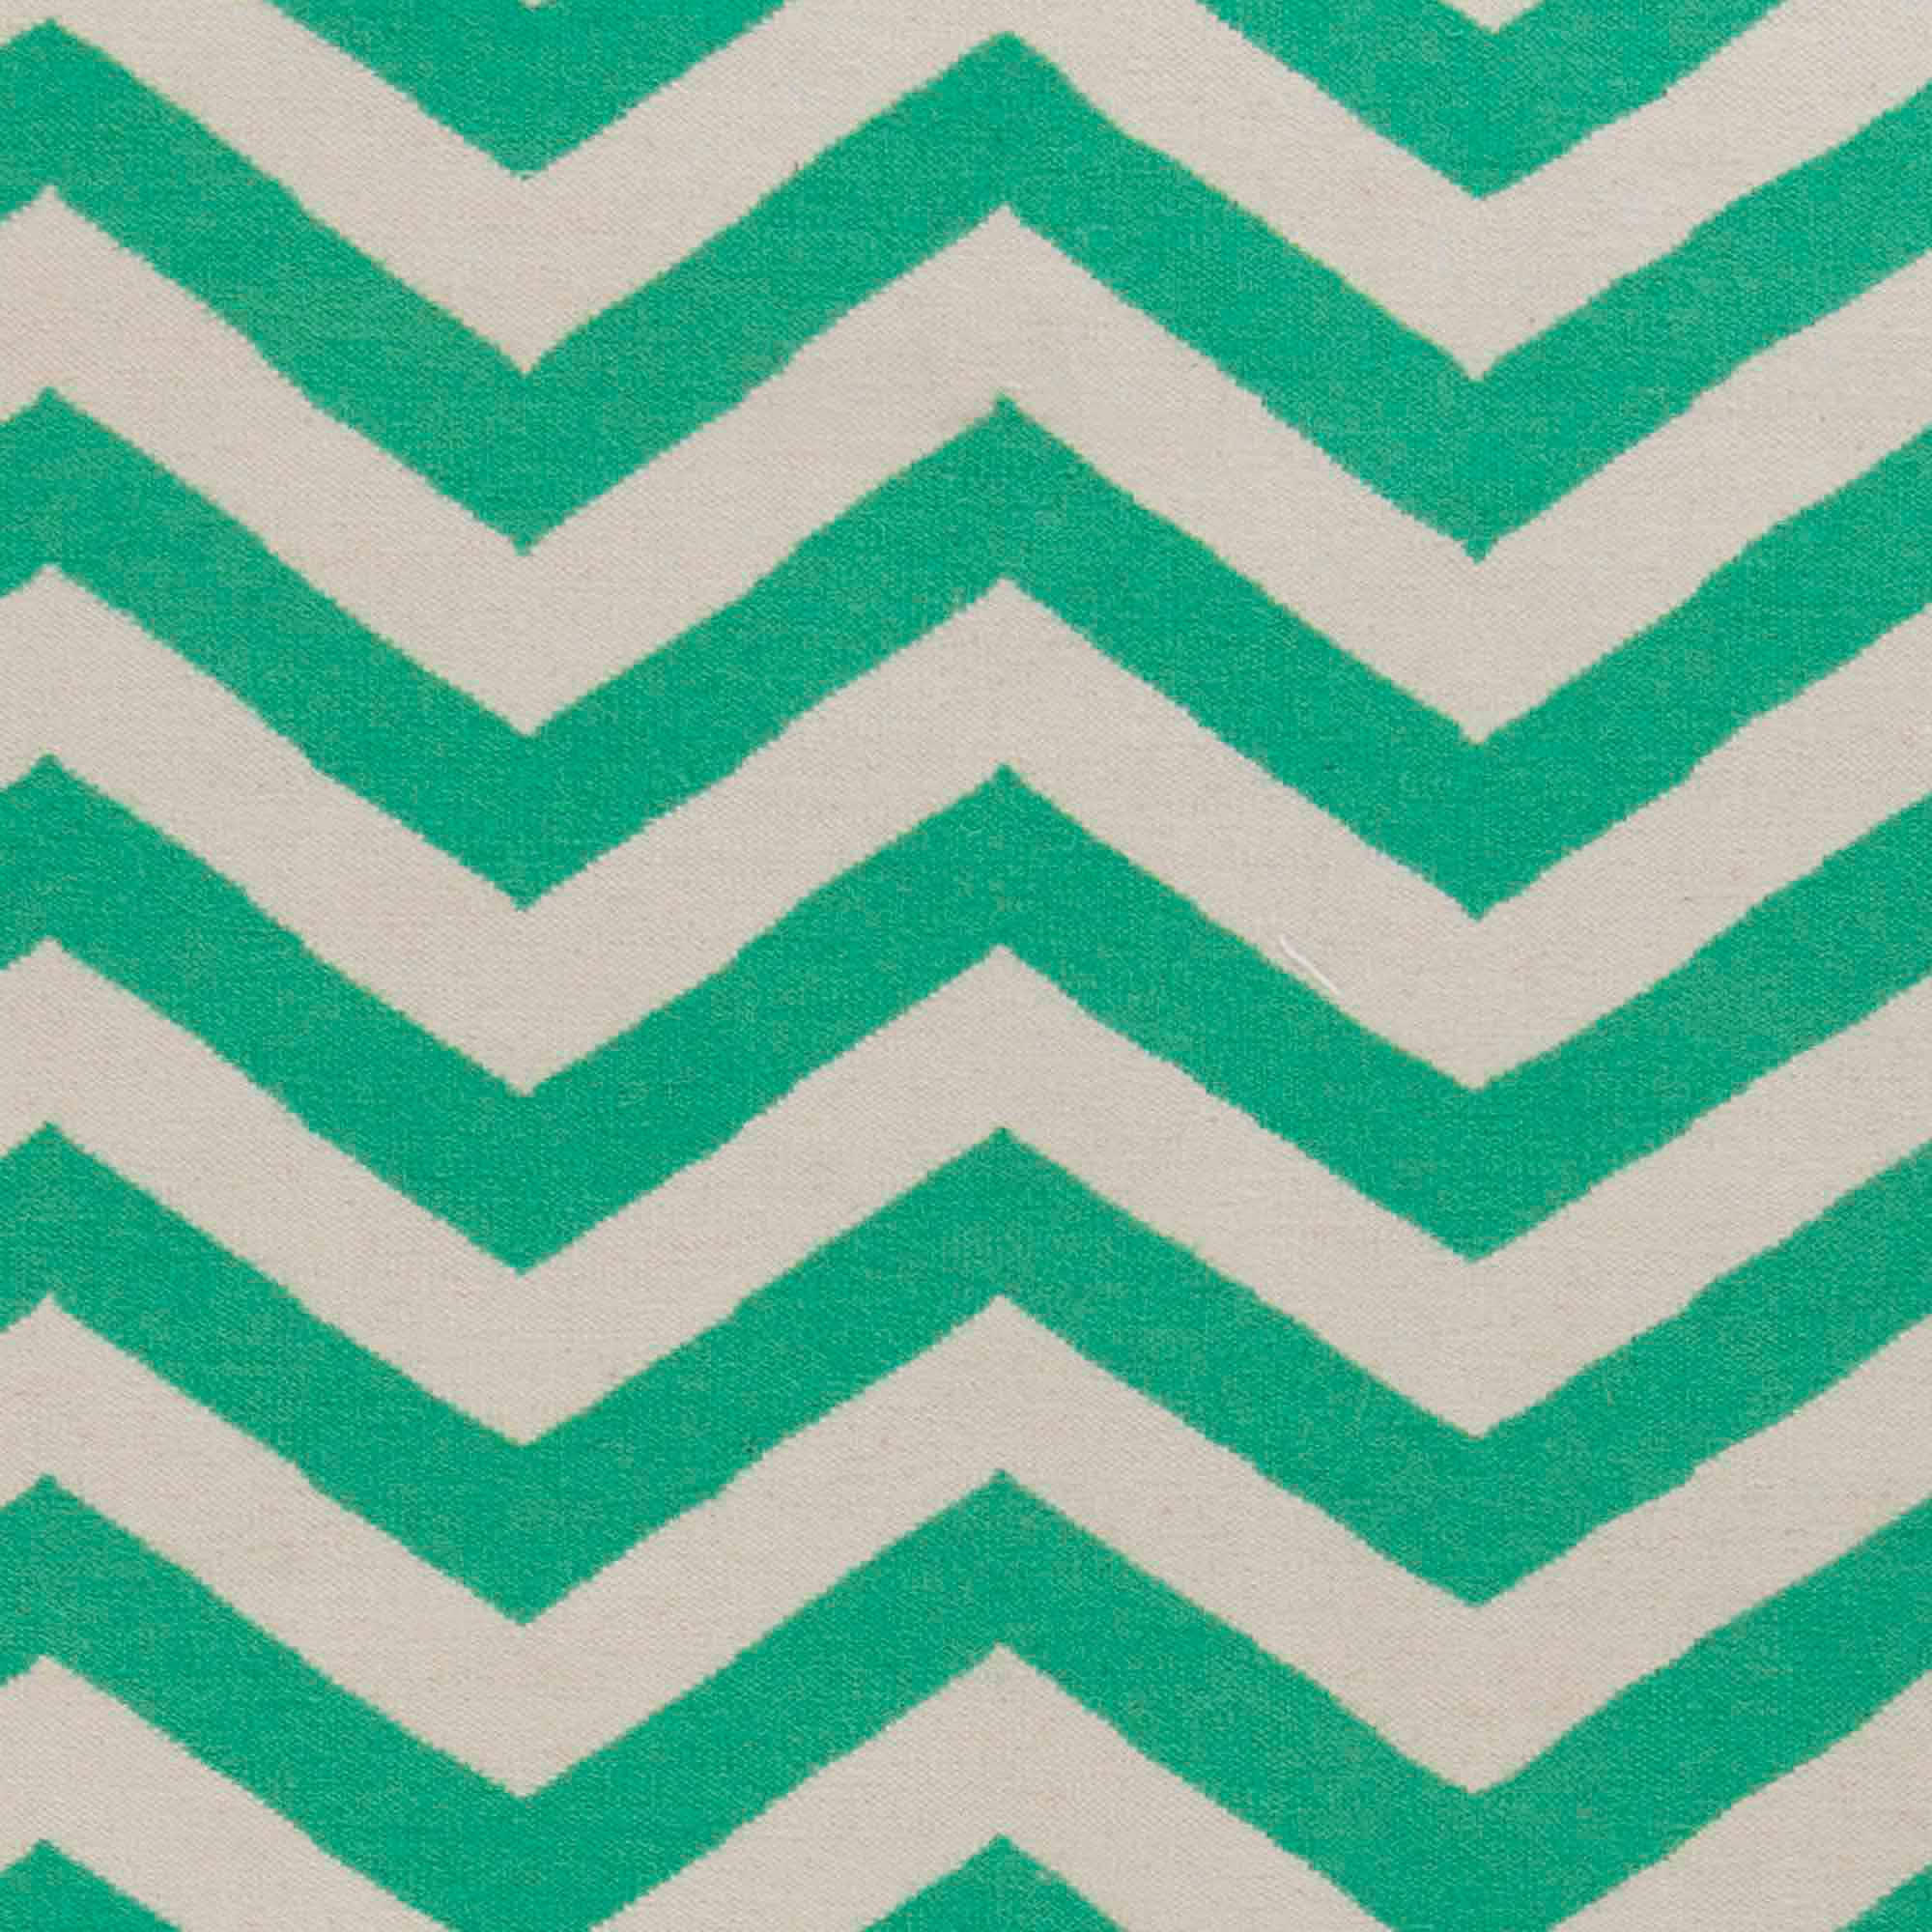 Art of Knot Laughlin Hand Woven Chic Chevron Flatweave Wool Area Rug, Mint